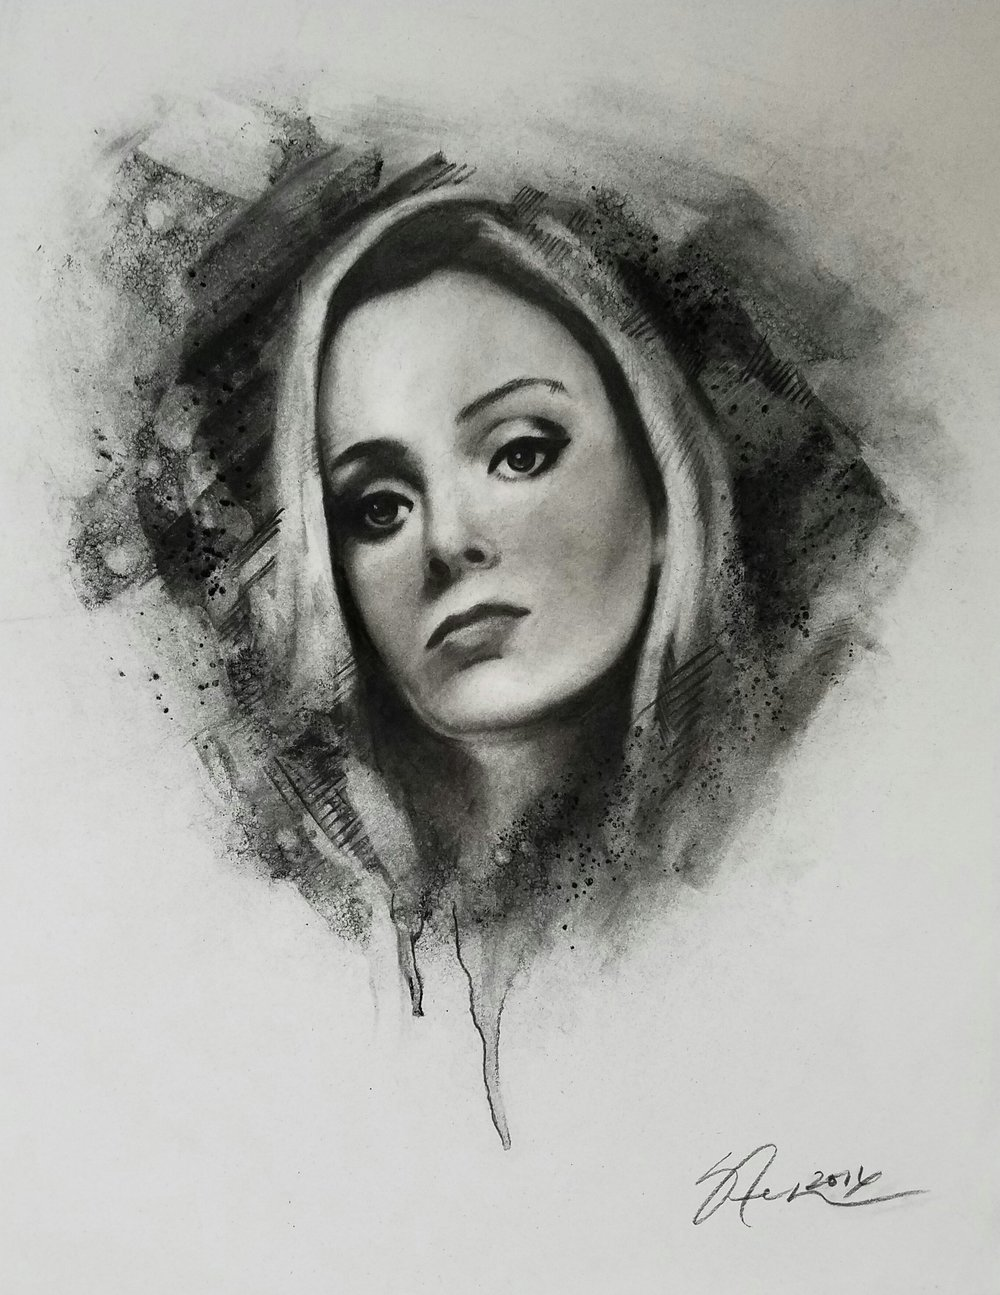 """Erica's Portrait""2016 - Charcoal on Bristol. 11x14 in."